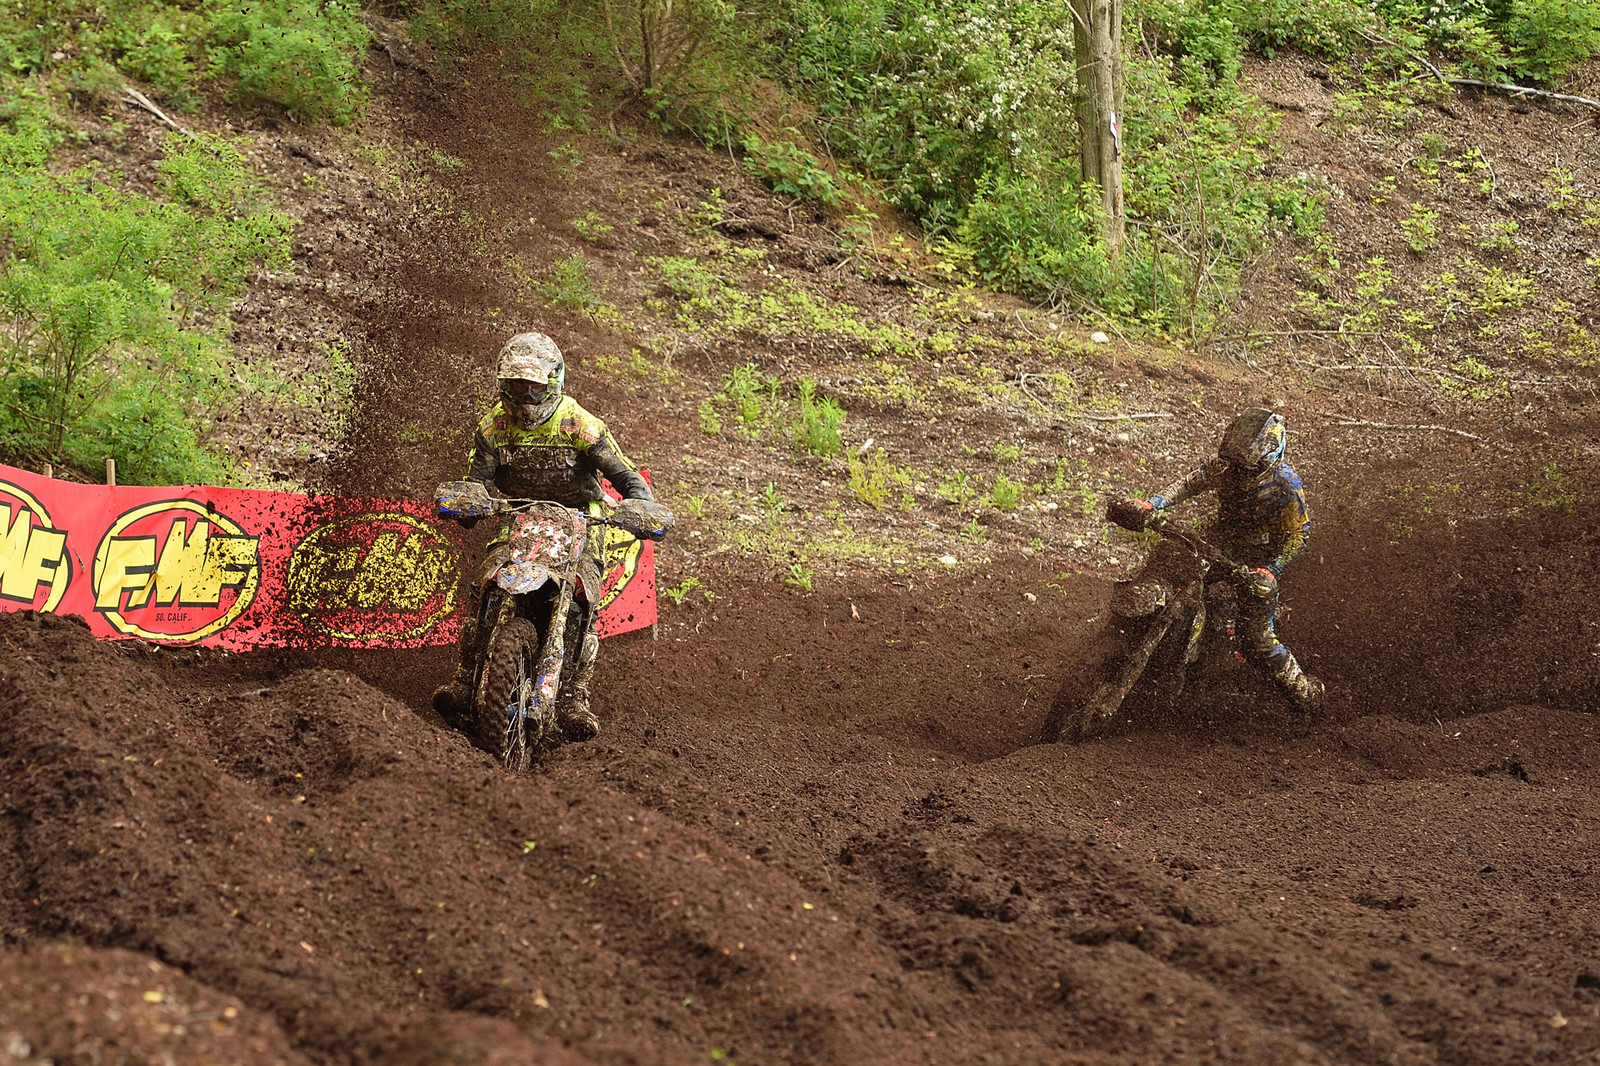 Ricky Russell leading Thad Duvall - X-Factor GNCC - Motocross Pictures - Vital MX